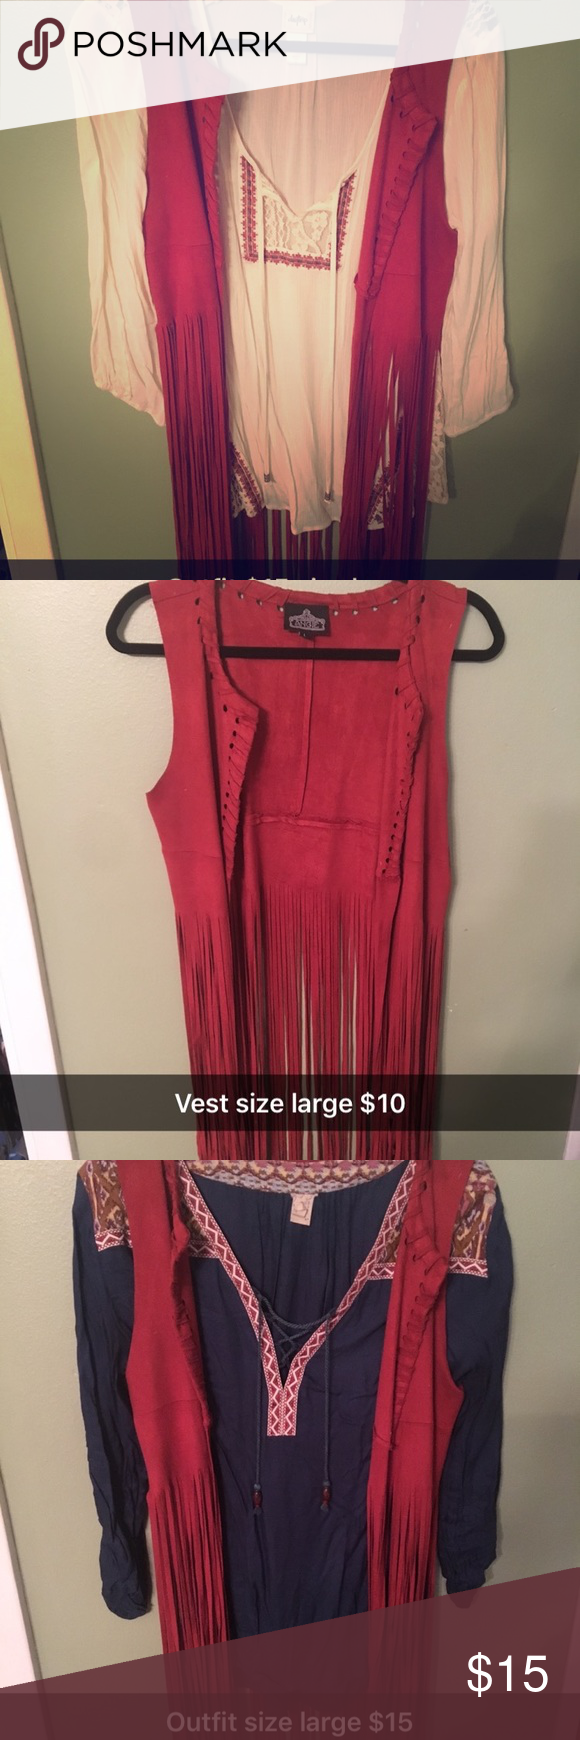 Vest and tops from buckle Size large outfit $15 separate pieces $10 Daytrip Tops Blouses